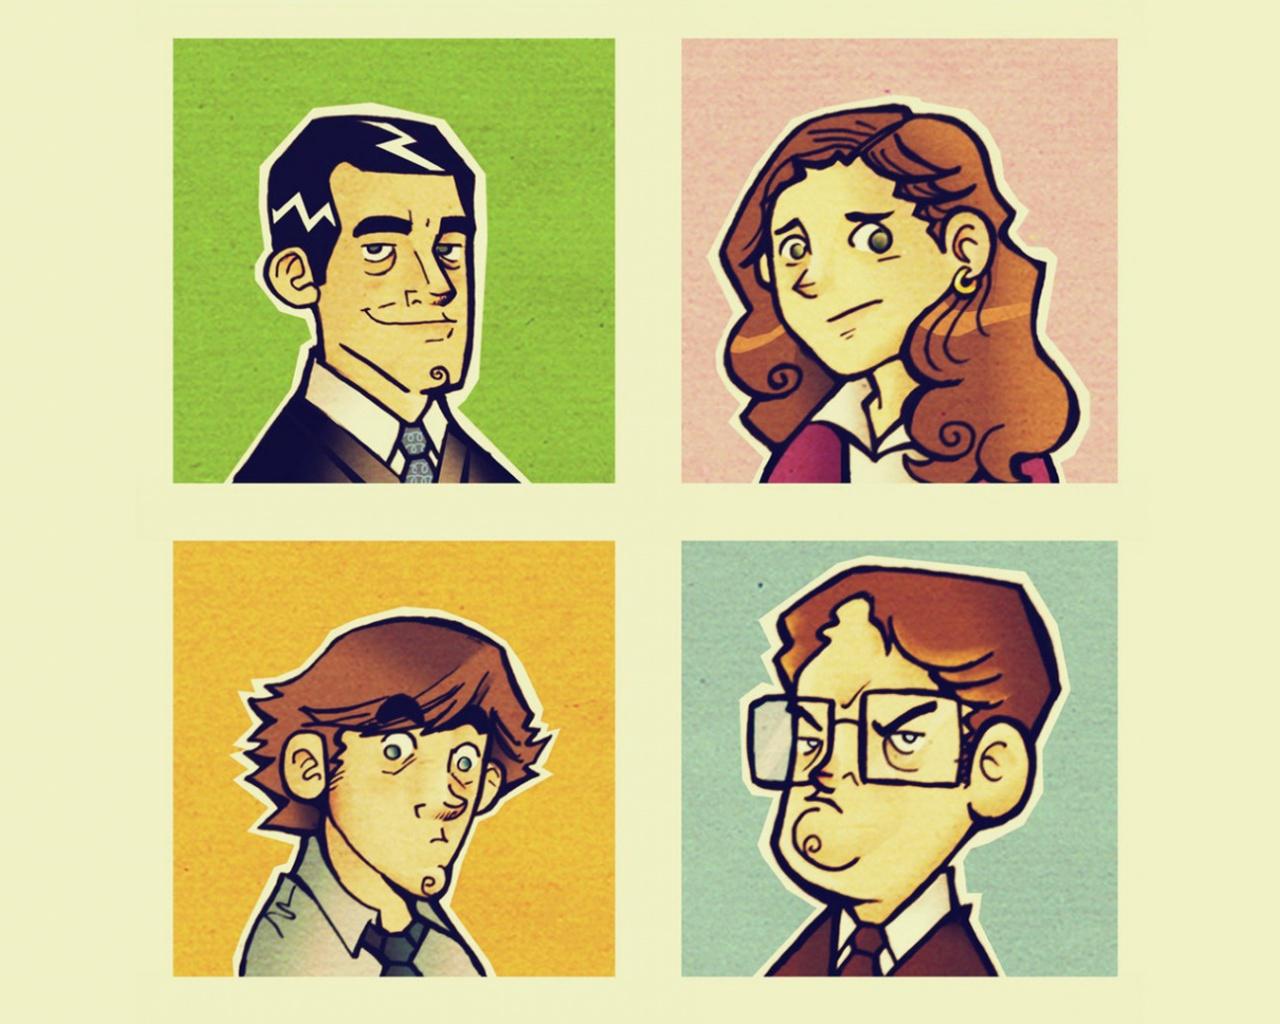 1280x1024 The Office Illustrations Desktop PC And Mac Wallpaper